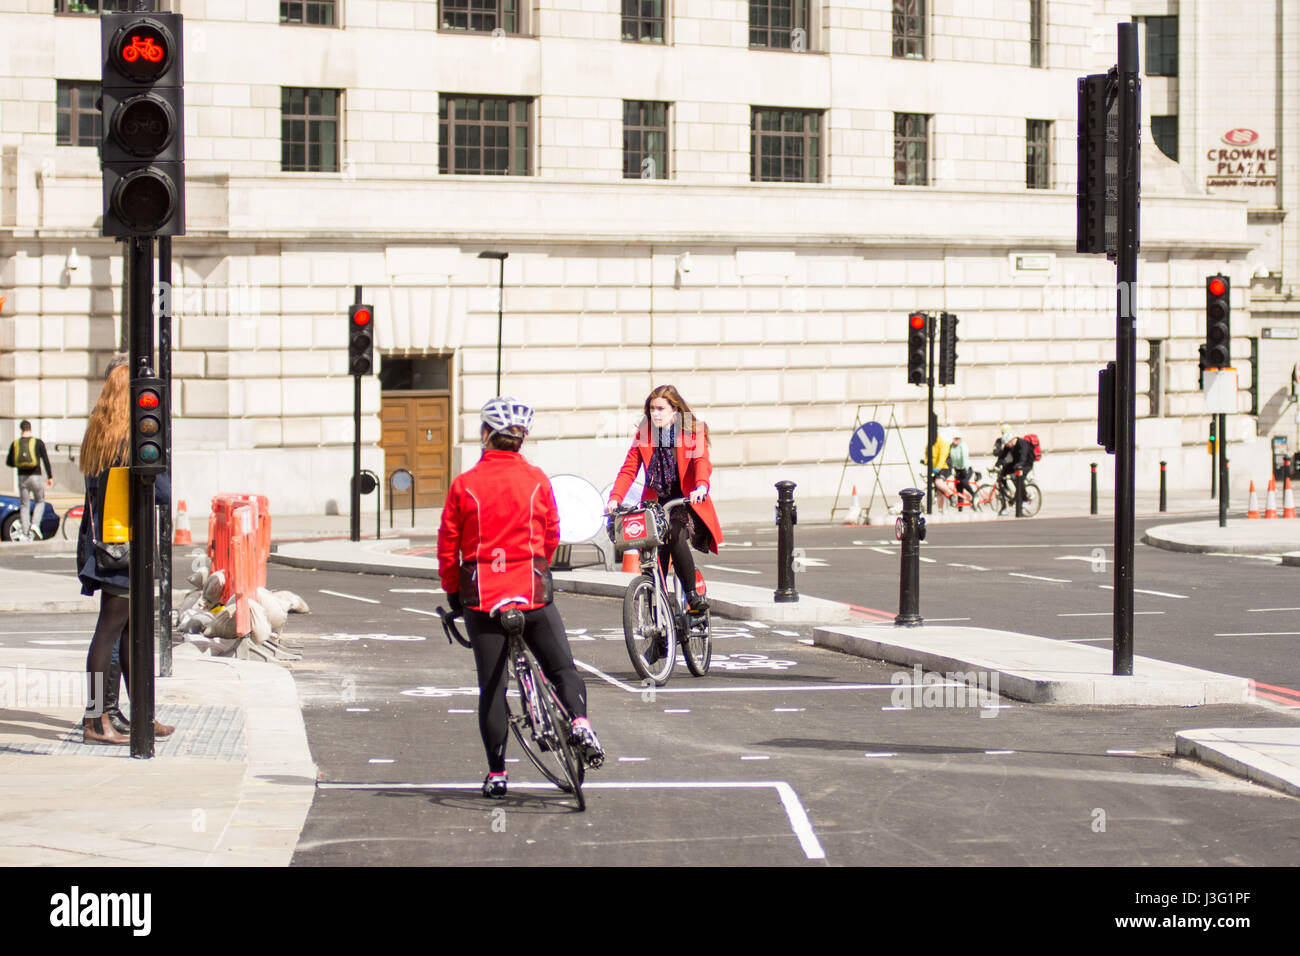 London, England - April 30, 2016: Cyclists using the newly completed segregated North-south Cycle Superhighway, CS6, at Blackfriars Bridge. Stock Photo